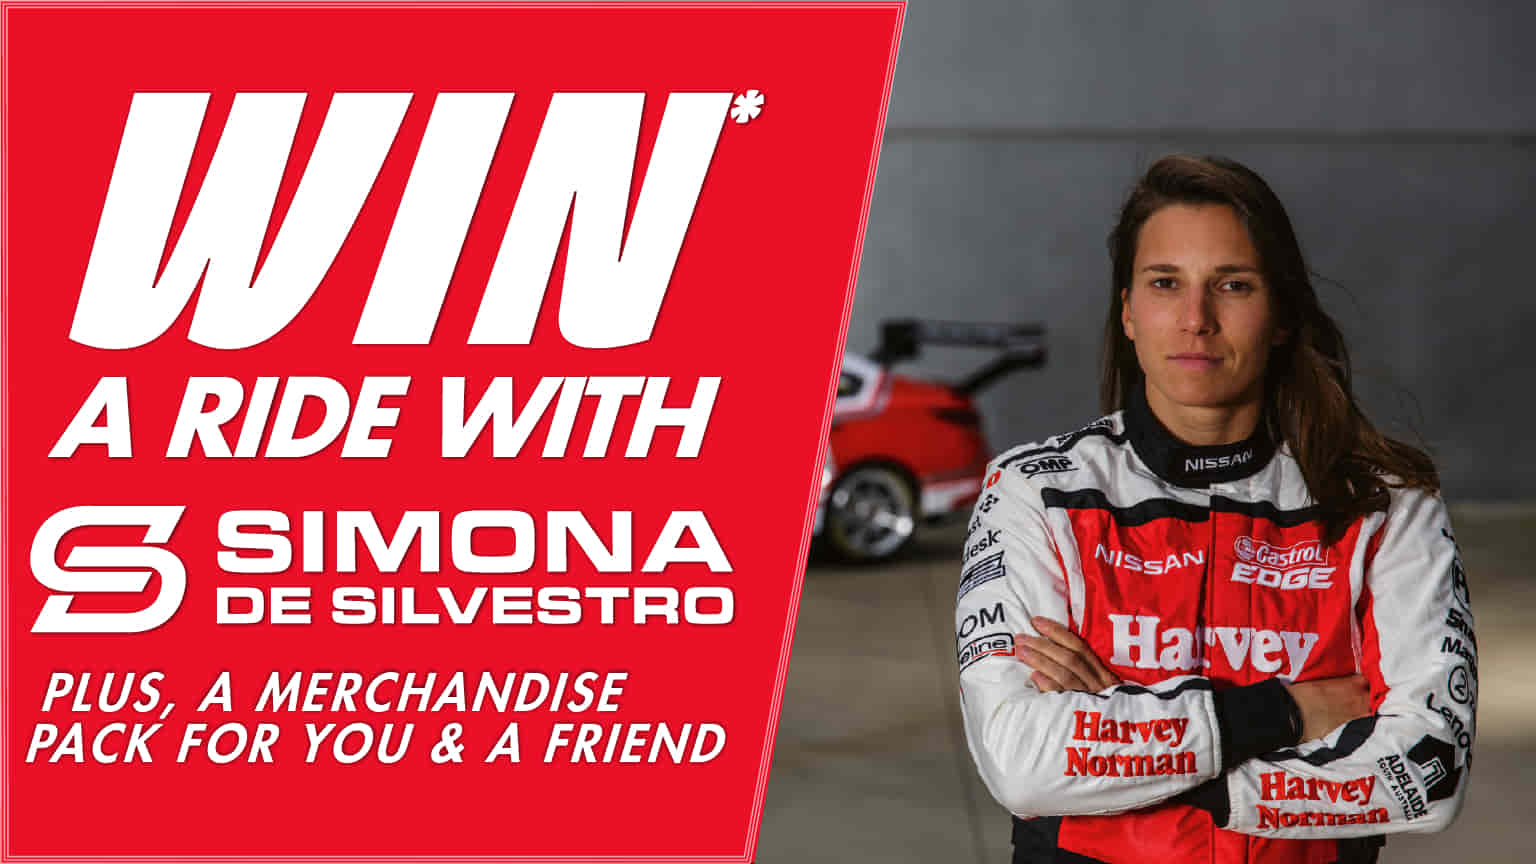 Win a ride with Simona De Silvestro